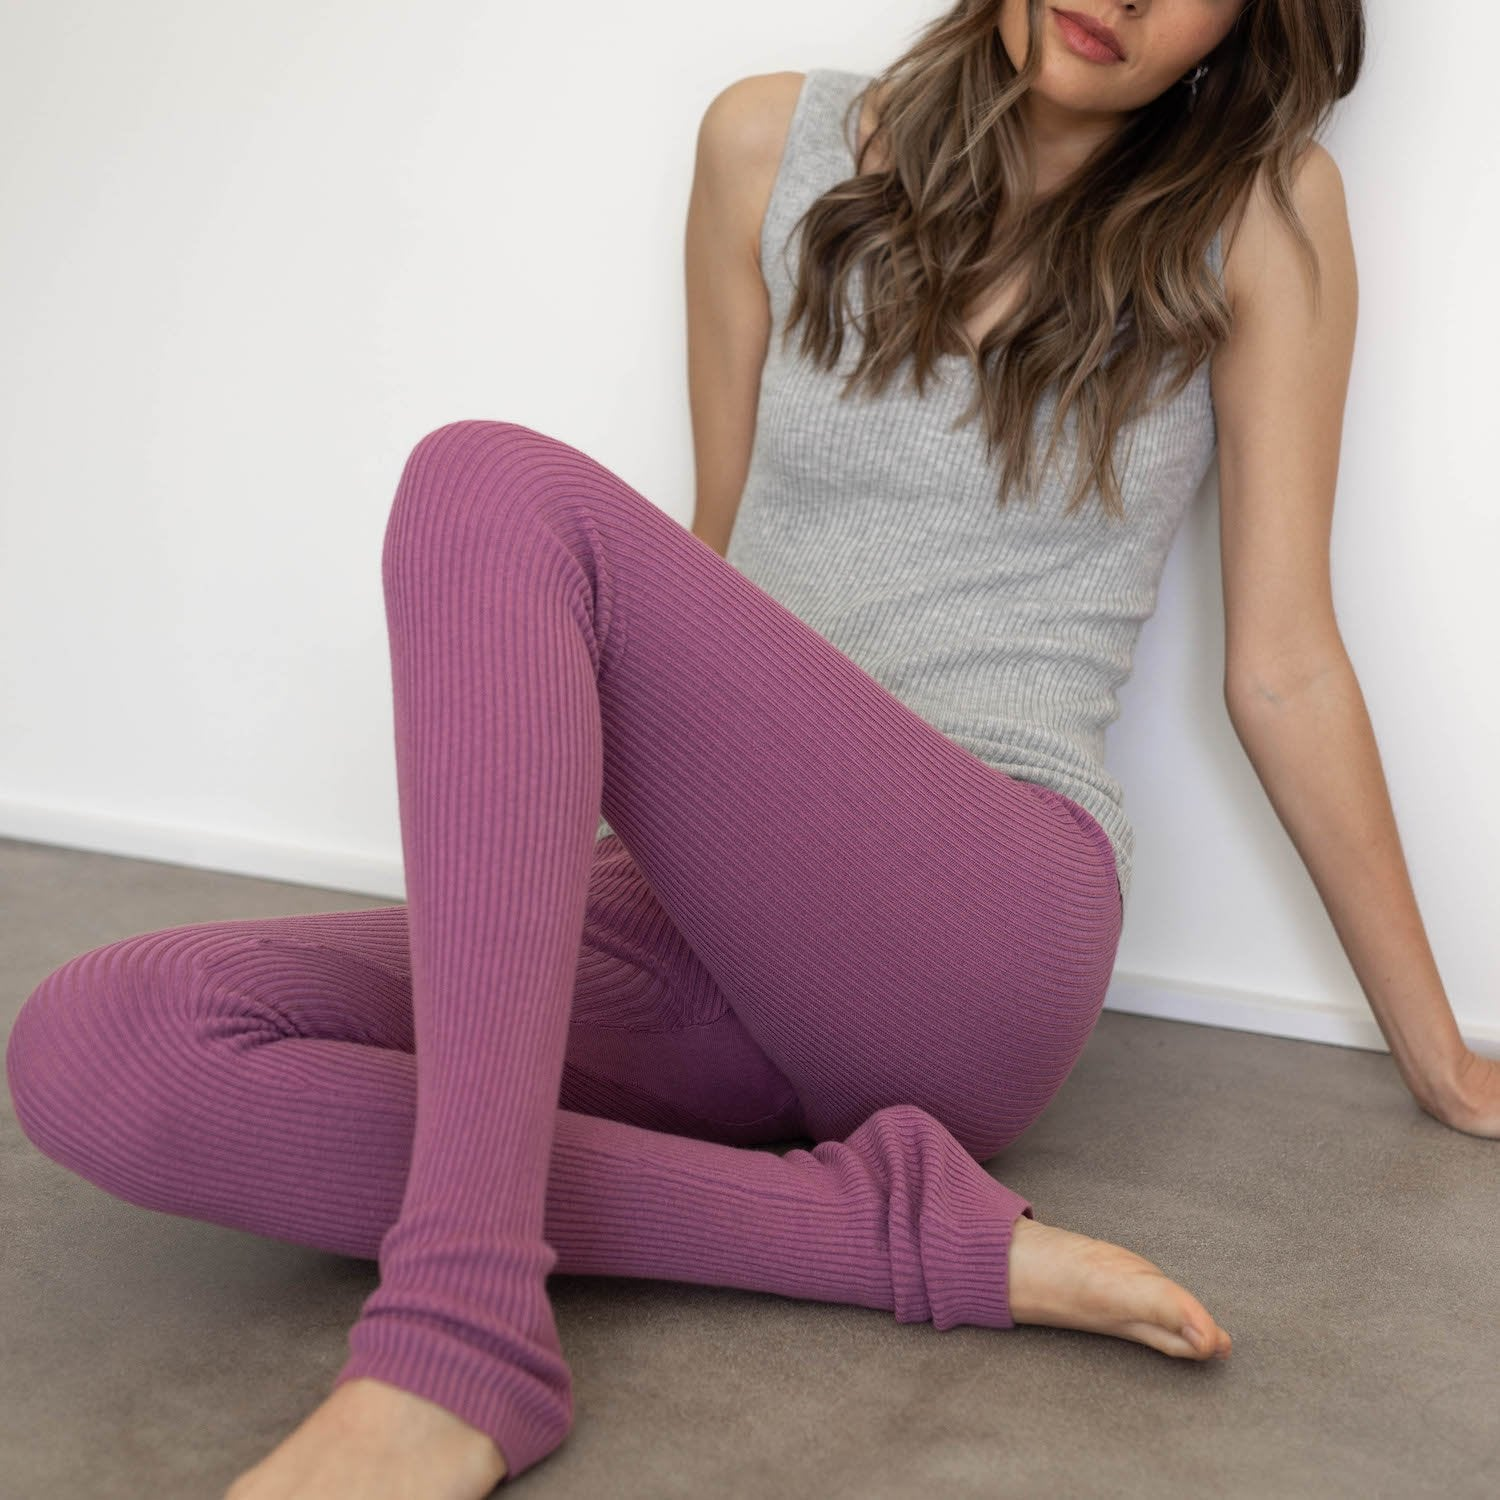 Lunya Sleepwear Cozy Cotton Silk Legging - #Dusk